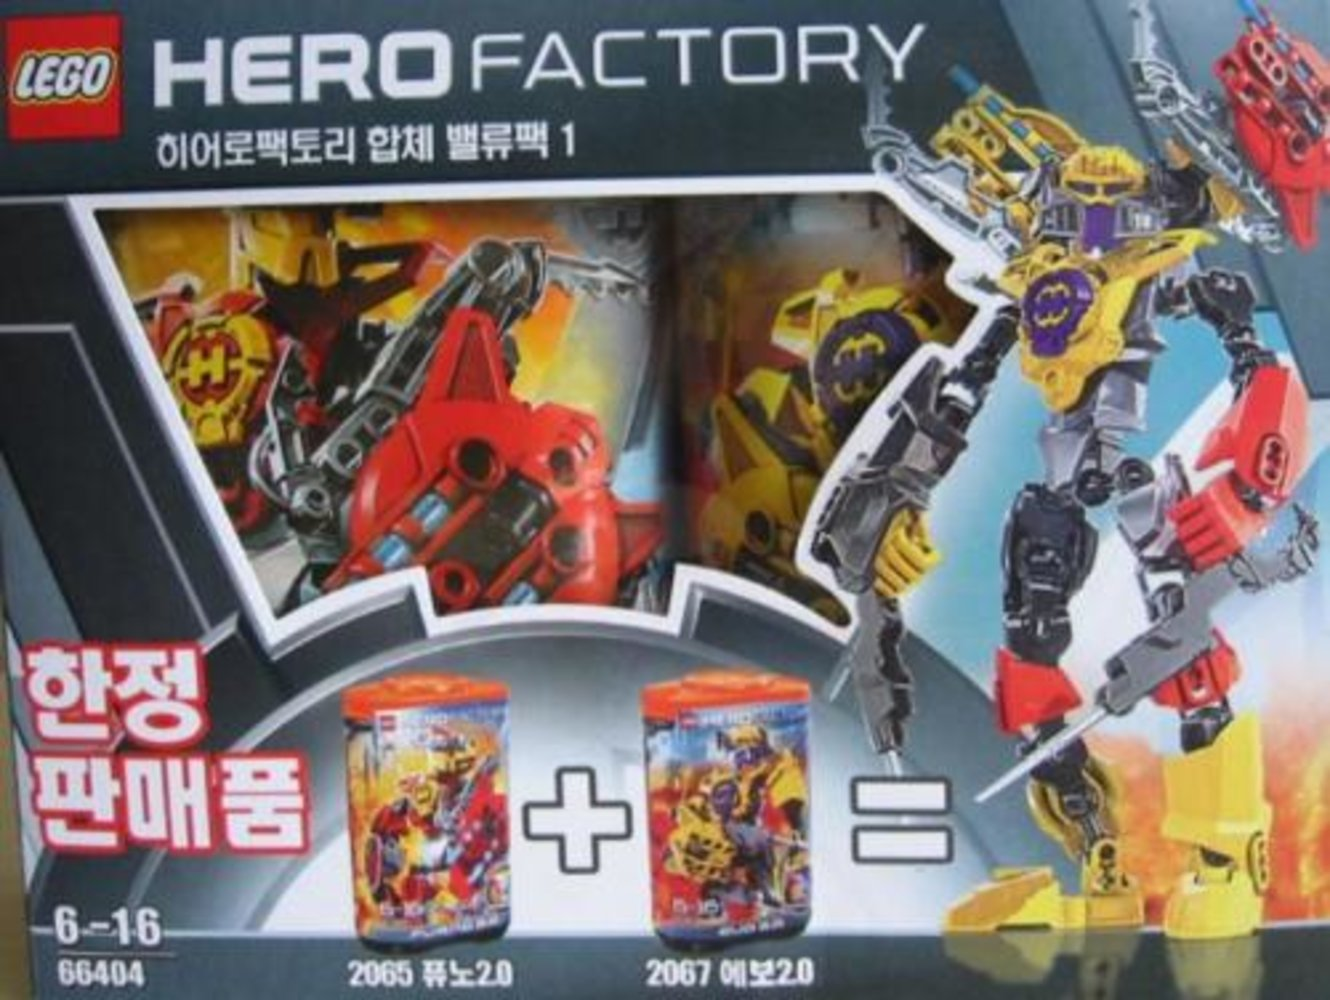 Hero Factory Super Pack 2 in 1 (2065, 2067)